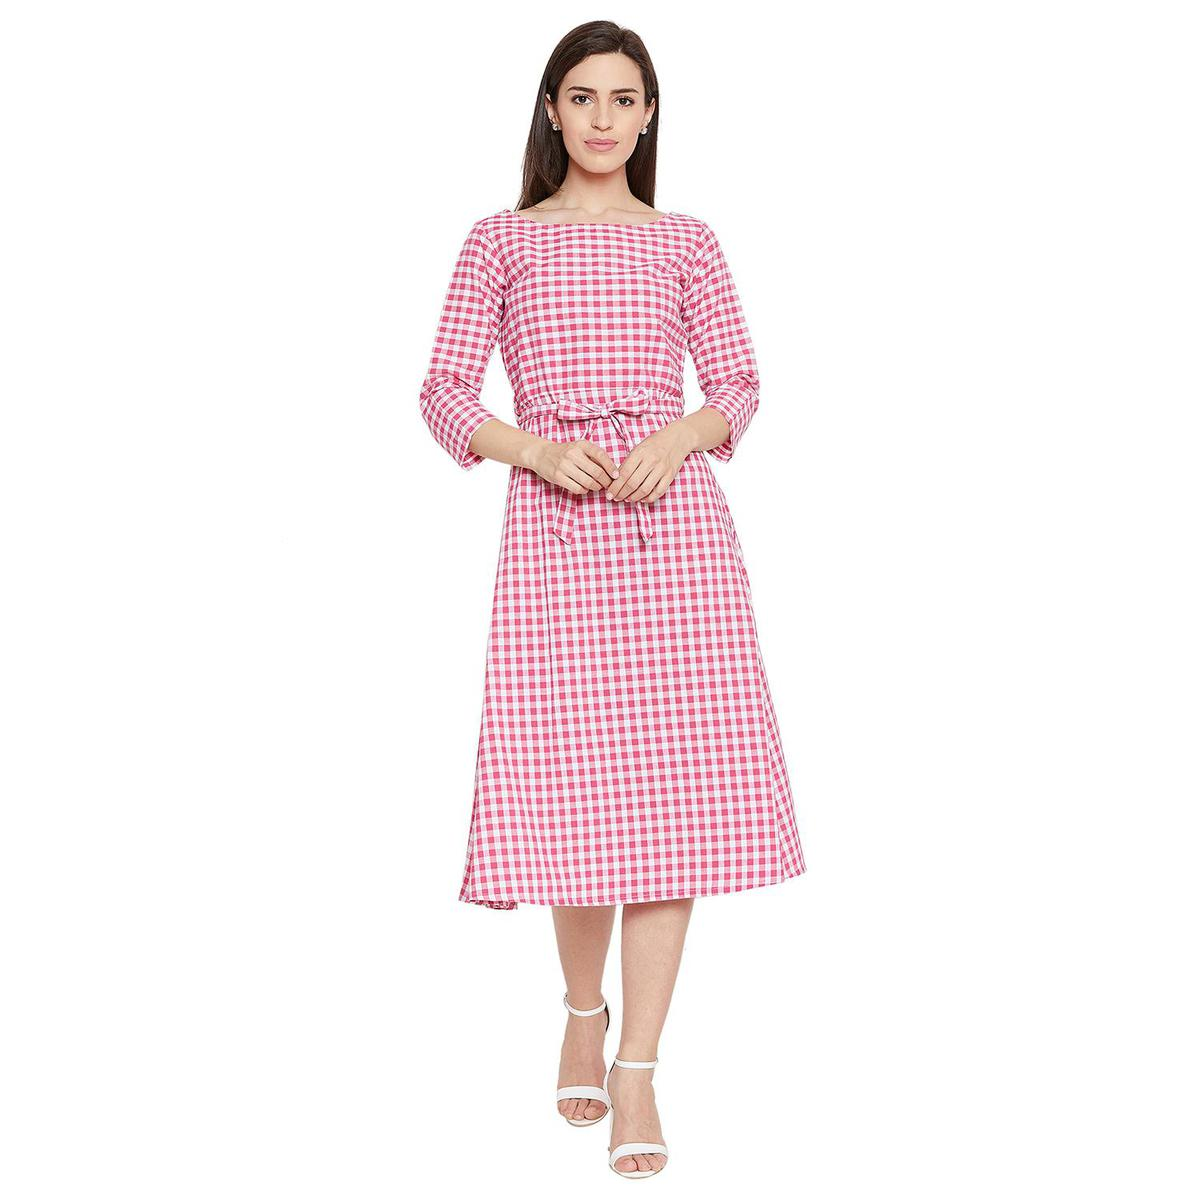 Fabnest - Pink Colored Casual Wear Checked Printed Cotton Dress